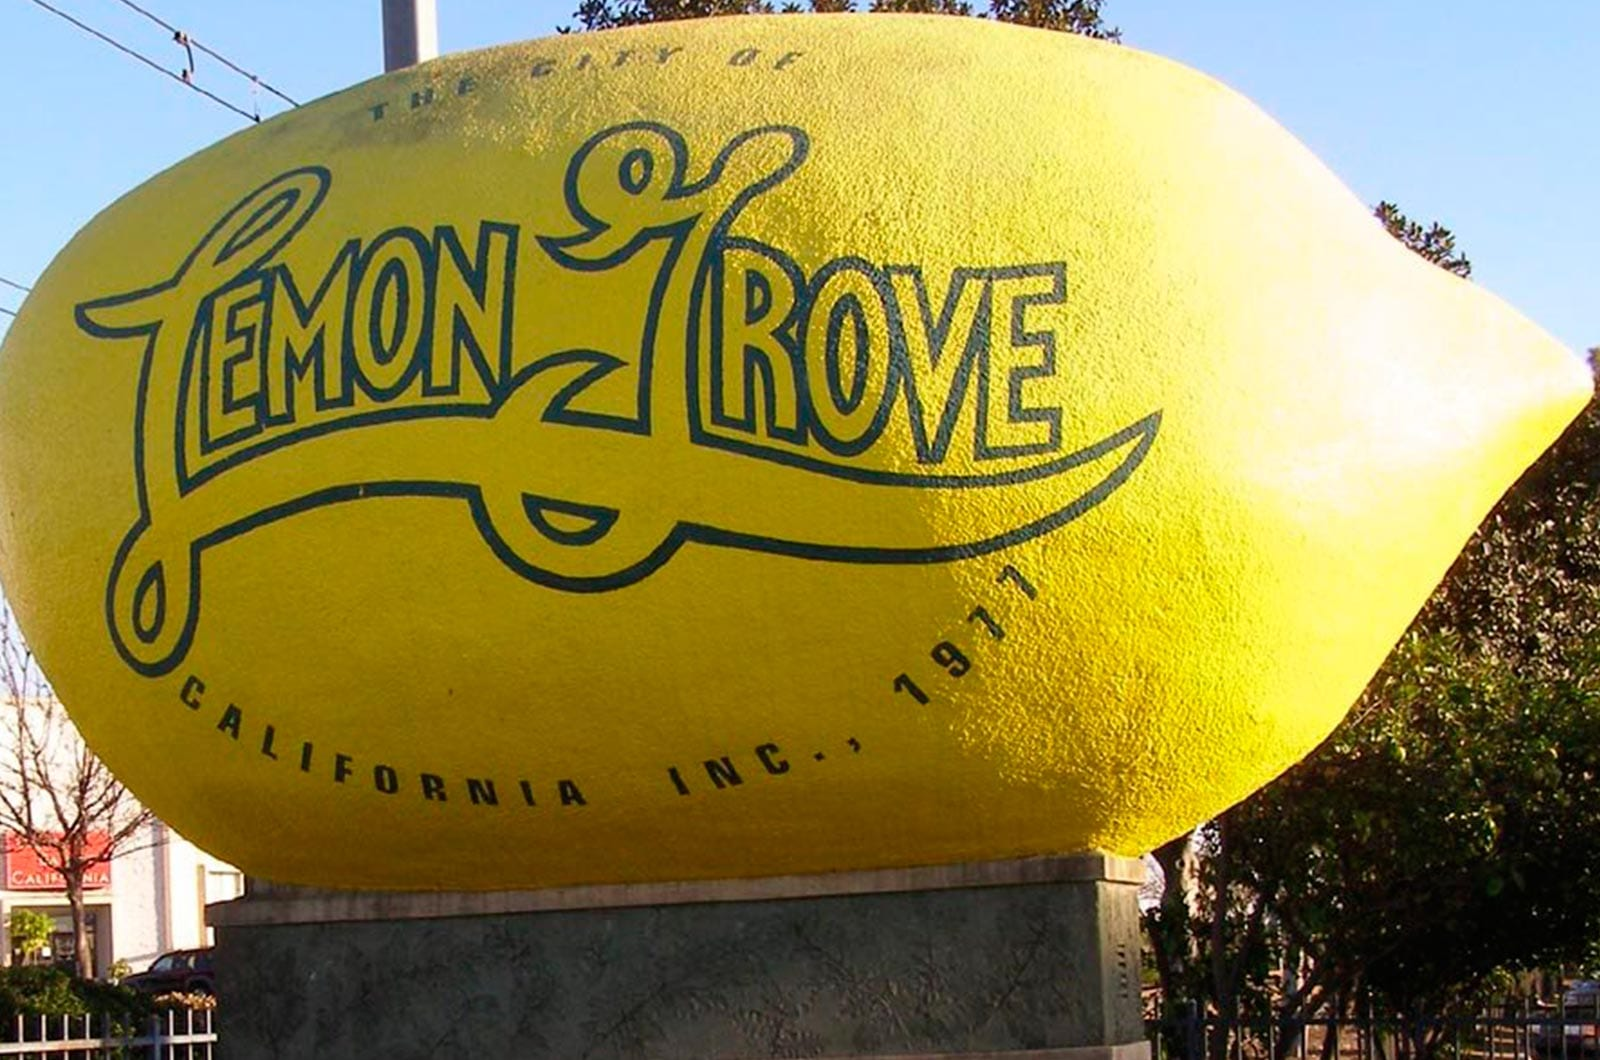 Lemon-Grove-CA-Featured-Image | Lemon Grove Virtual Tour Photographer | Lemon Grove Drone Aerial Photography Services | Lemon Grove HDR Real Estate Photography Service